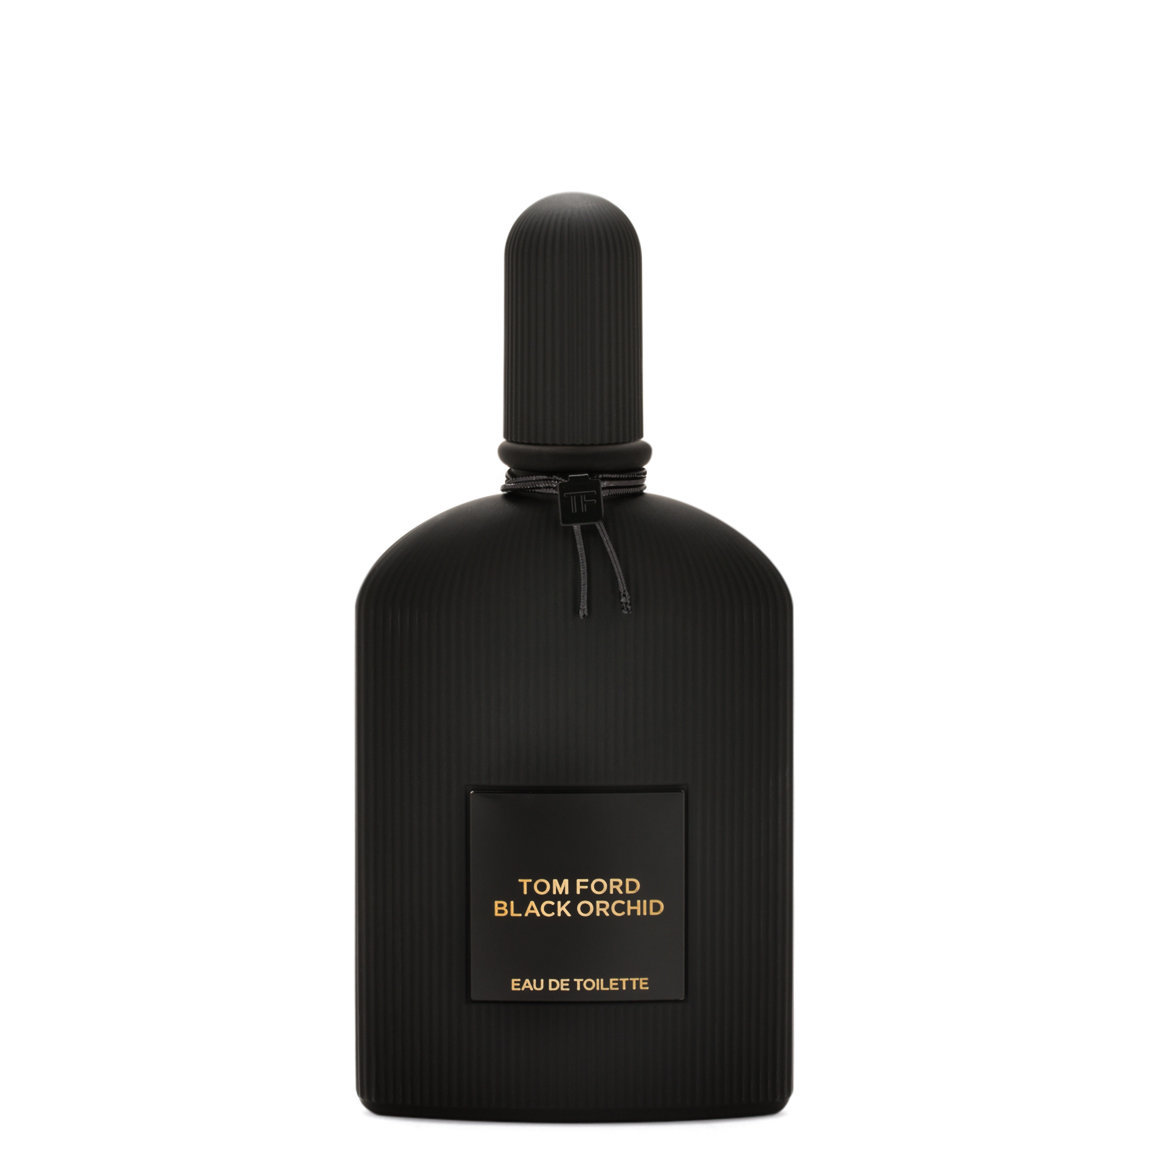 TOM FORD Black Orchid EDT 50 ml product smear.